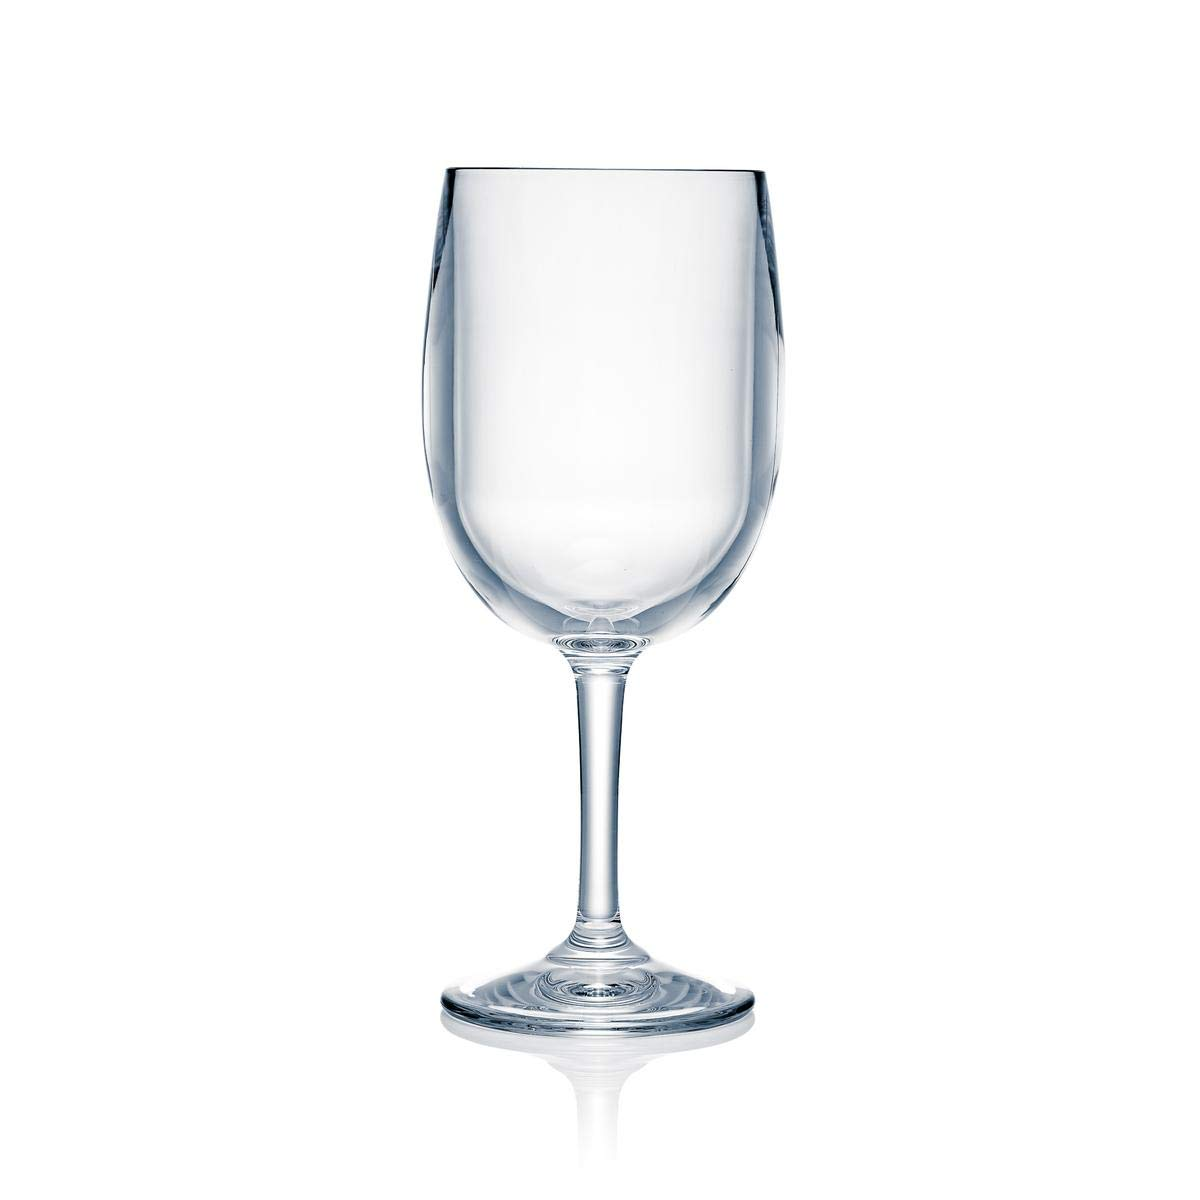 Starhl 406703 Classic Wine Glass, 13 oz, Set of 12